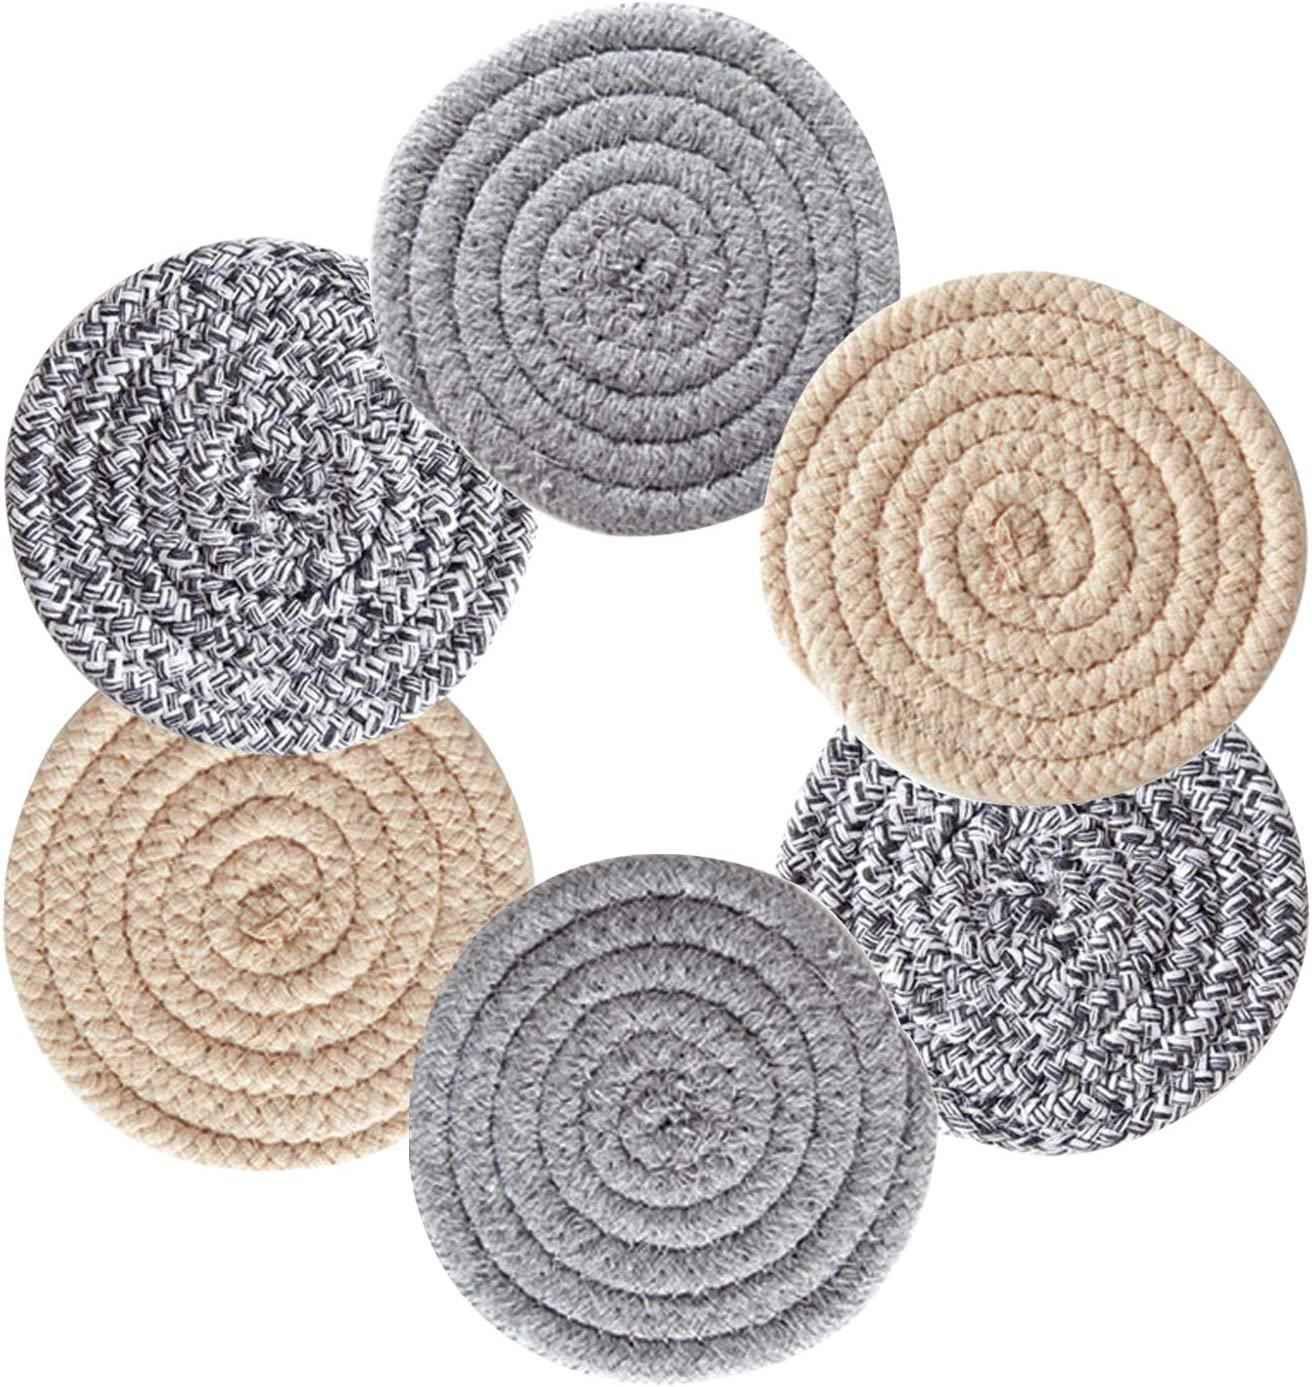 6 Pcs Coasters For Drinks Absorbent,Handmade Braided Drink Coasters Set,Heat-Resistant & Reusable Cloth Coasters,Housewarming Gift(4.3 Inch,Round, 8 mm Thick)